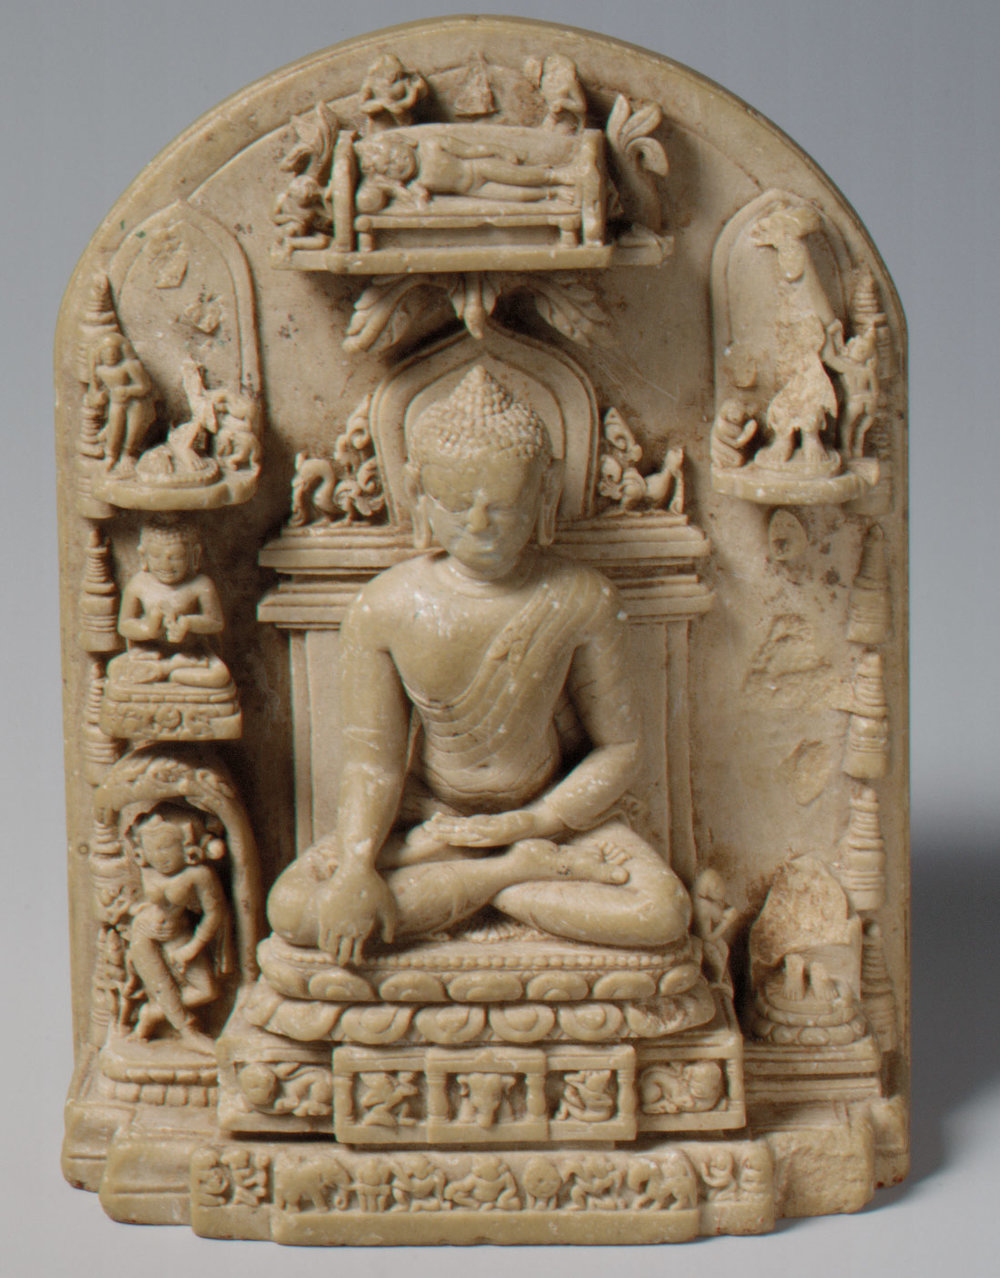 Plaque with Scenes from the Life of the Buddha. 12th century. Pala. Bihar, India. The Met.